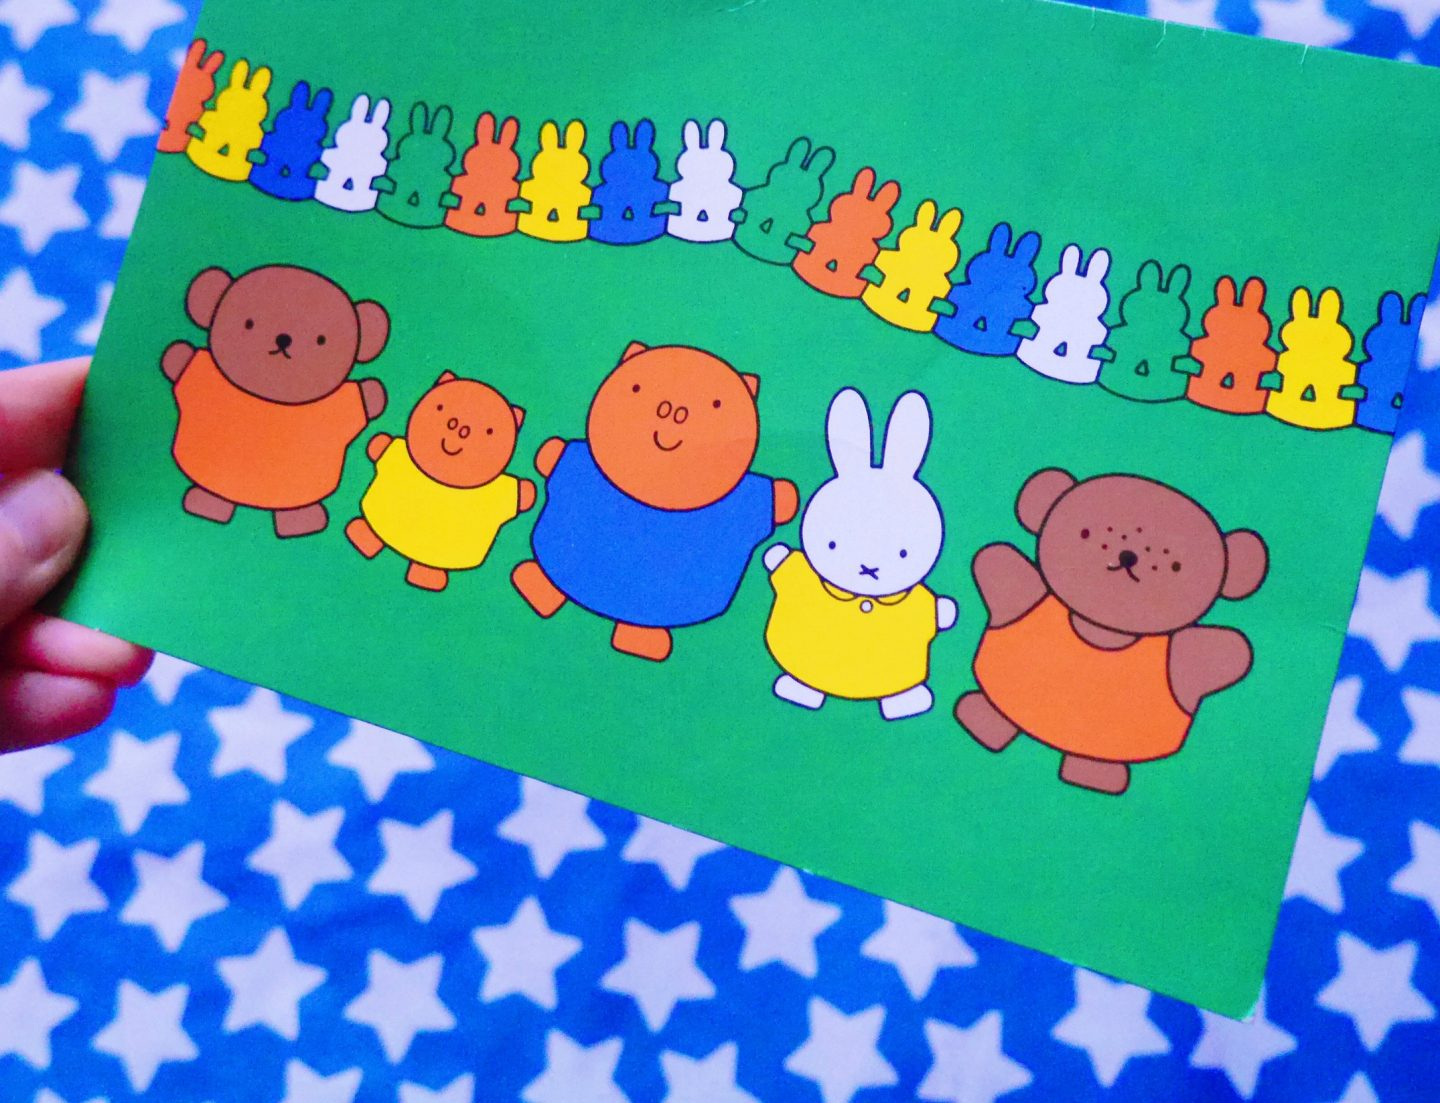 Thanks for the Miffy memories